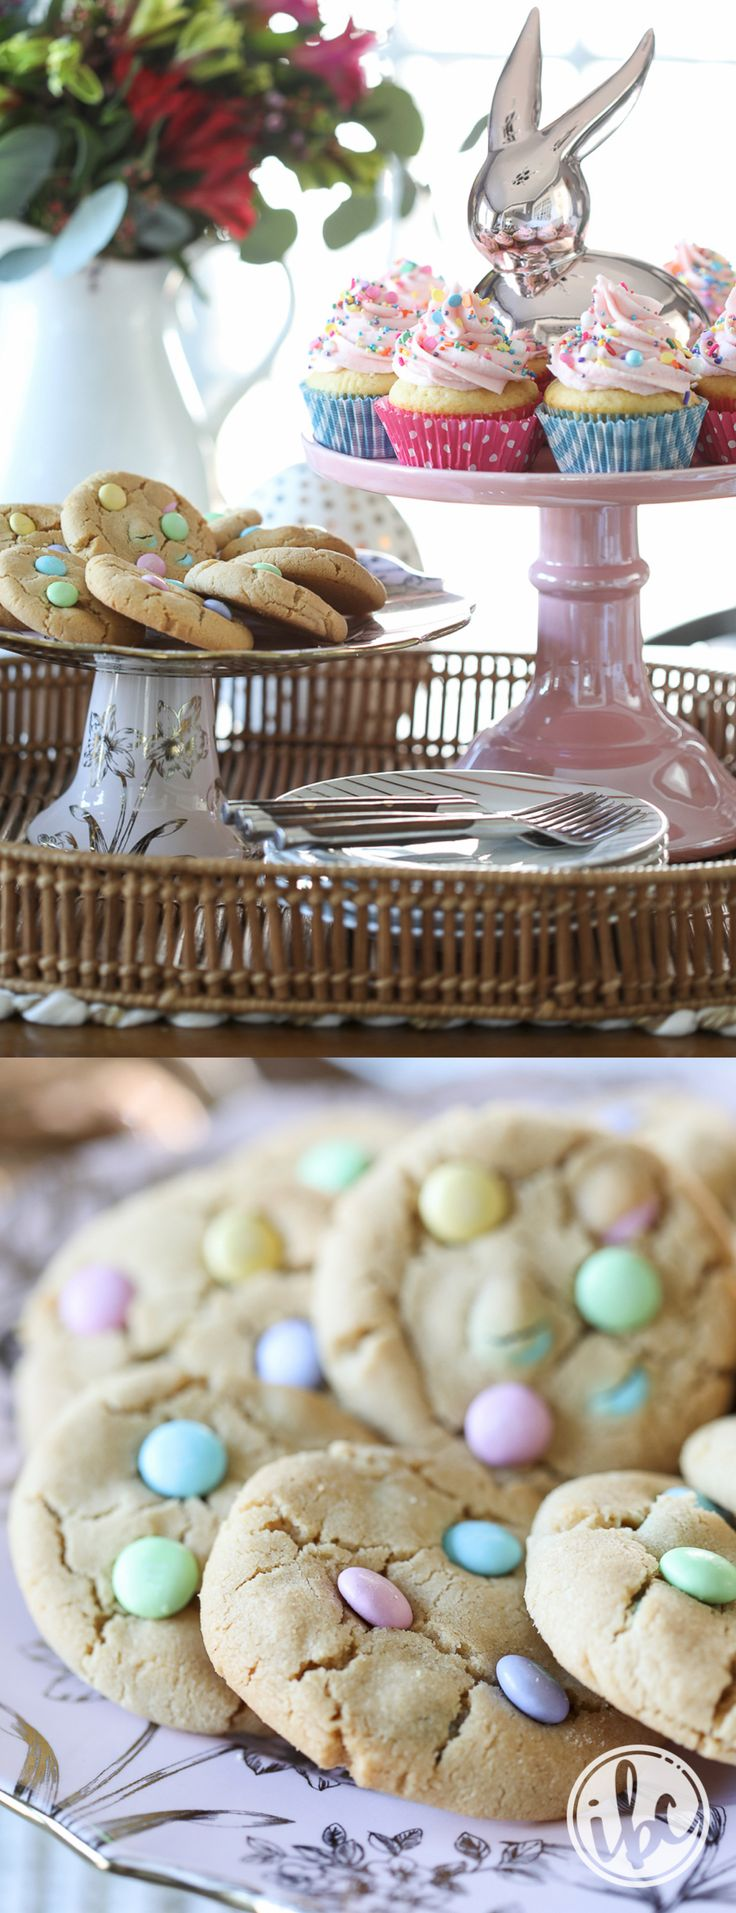 Soft Peanut Butter Cookies for Spring - Easter spring dessert recipes, cookie recipe | Inspired by Charm